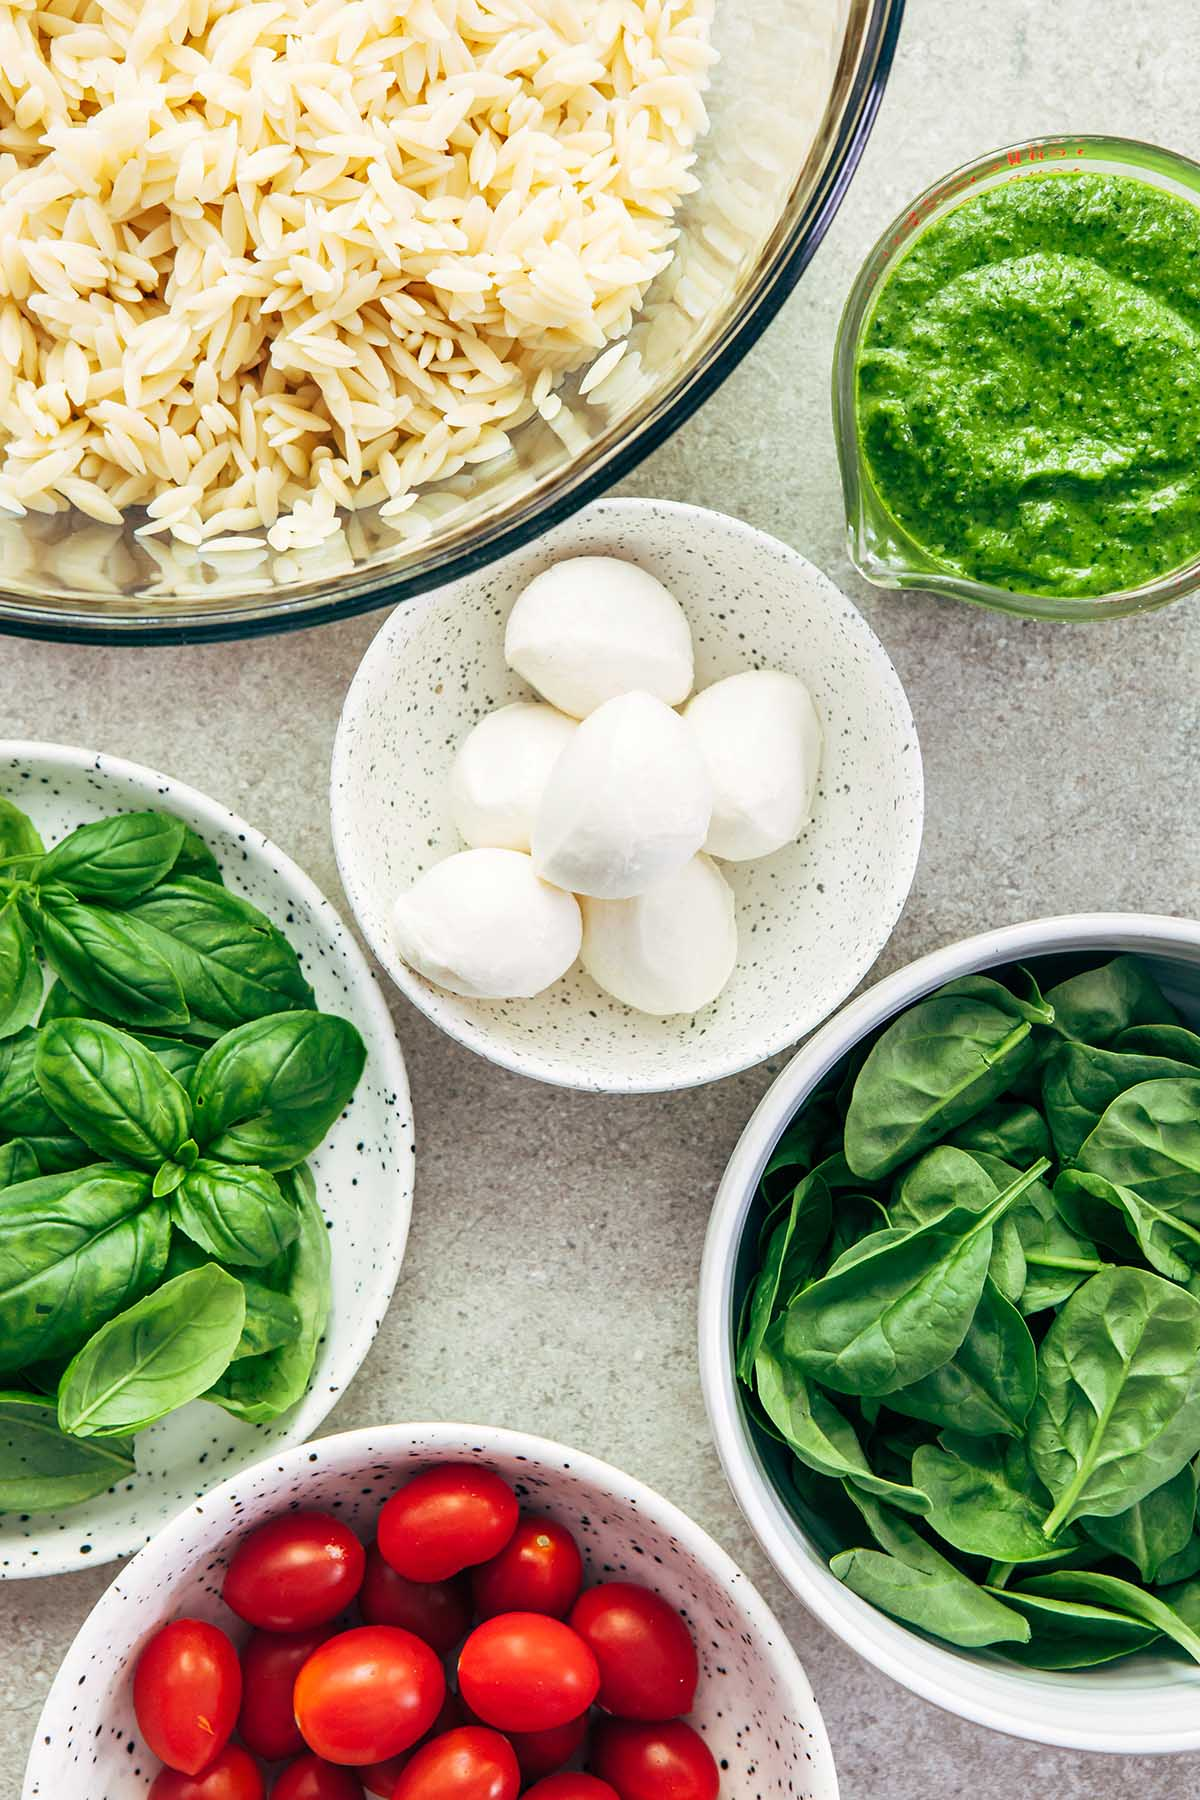 Overhead shot of a bowl of cooked orzo, a cup of pesto, and bowls of baby spinach, bocconcini, cherry tomatoes, and fresh basil leaves.